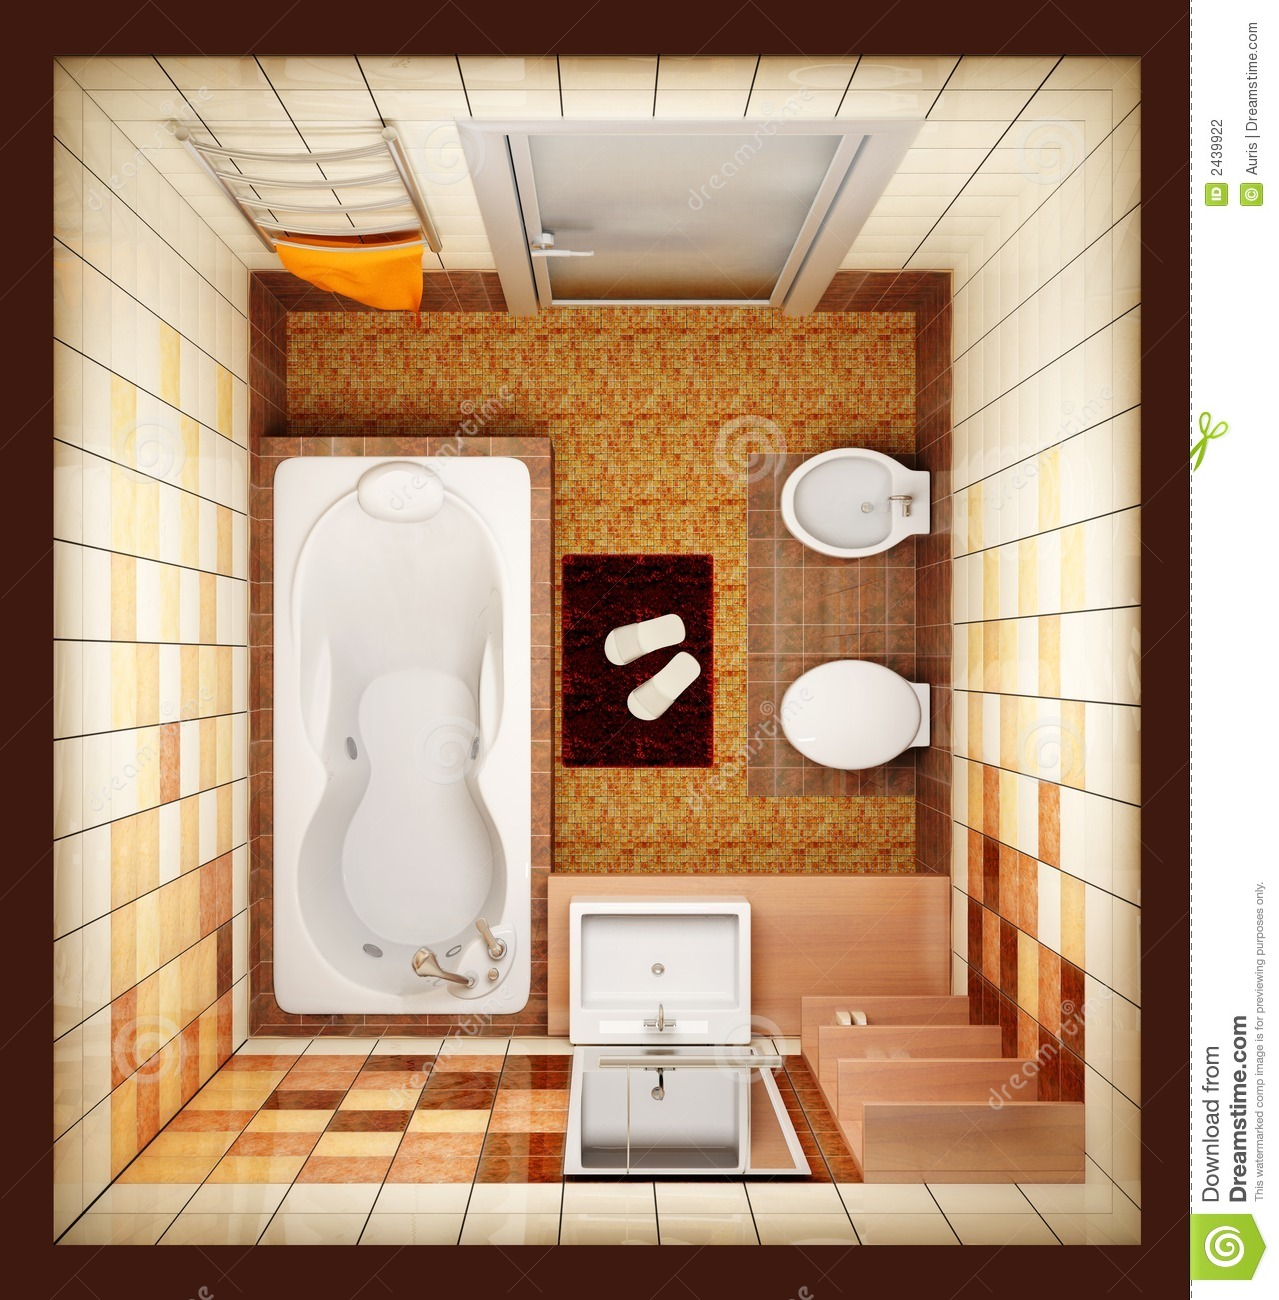 Bathroom Designs Top View Of Top View Of The Bathroom Stock Photo Image Of Decor